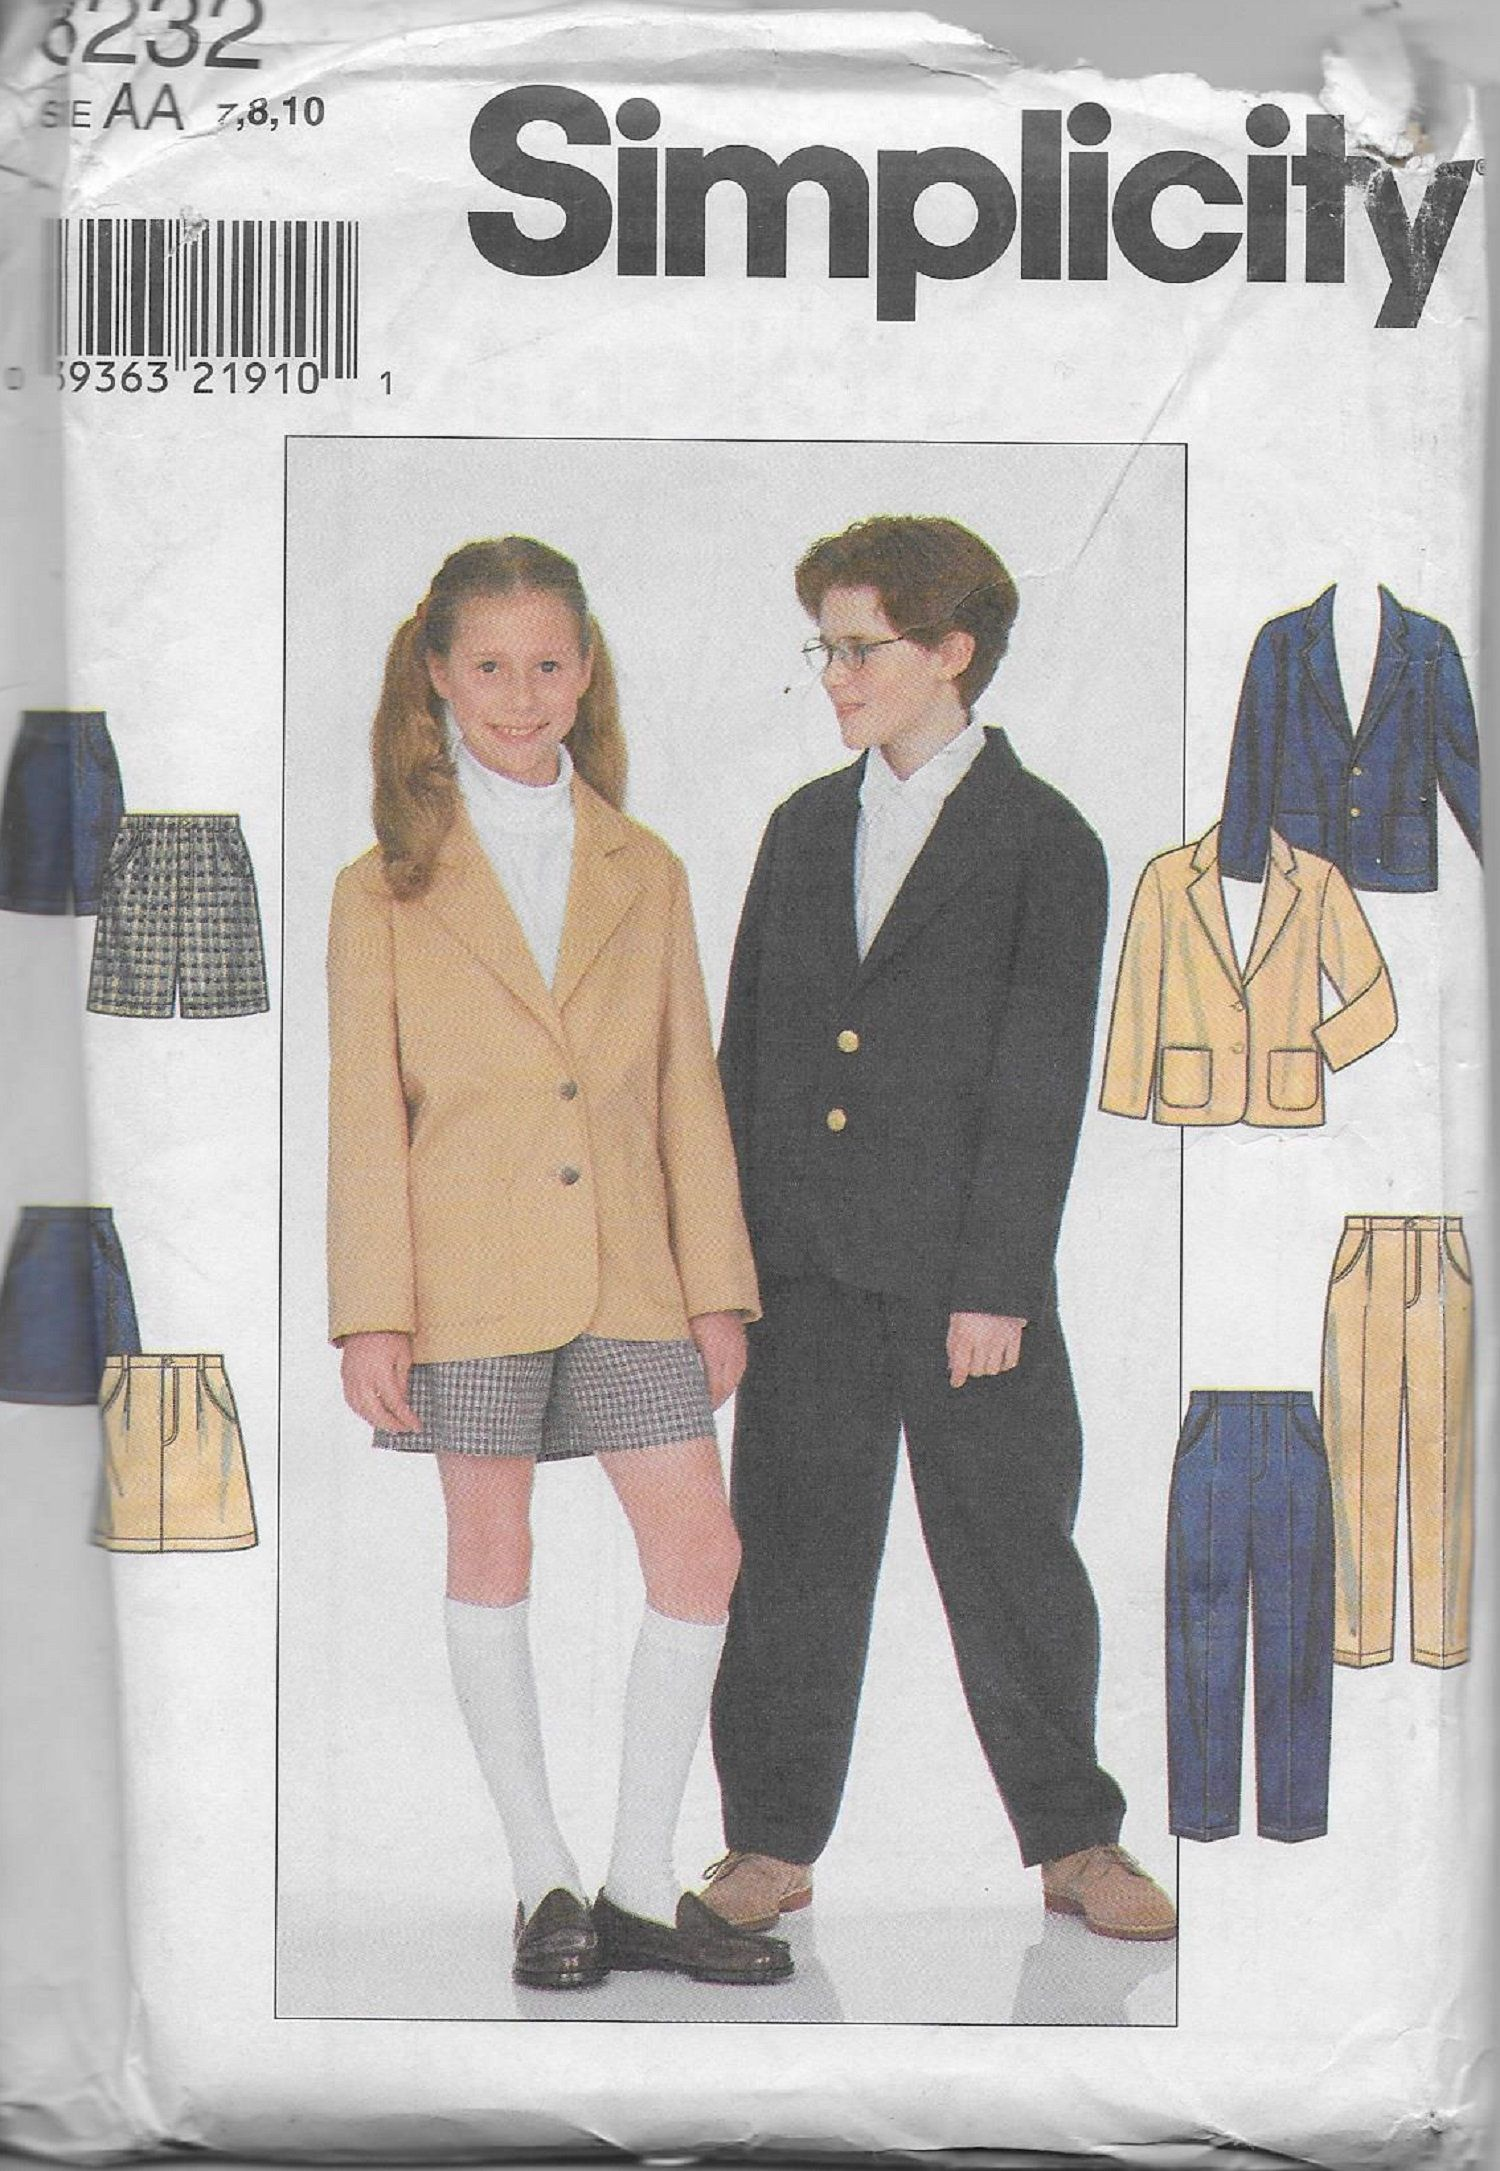 b2e575c764df Simplicity 8232 Boys' and Girls' Suit, Jacket, Skirt and Pants Or Shorts,  School Uniform Sewing Pattern, Size 7-8-10, UNCUT by DawnsDesignBoutique on  Etsy